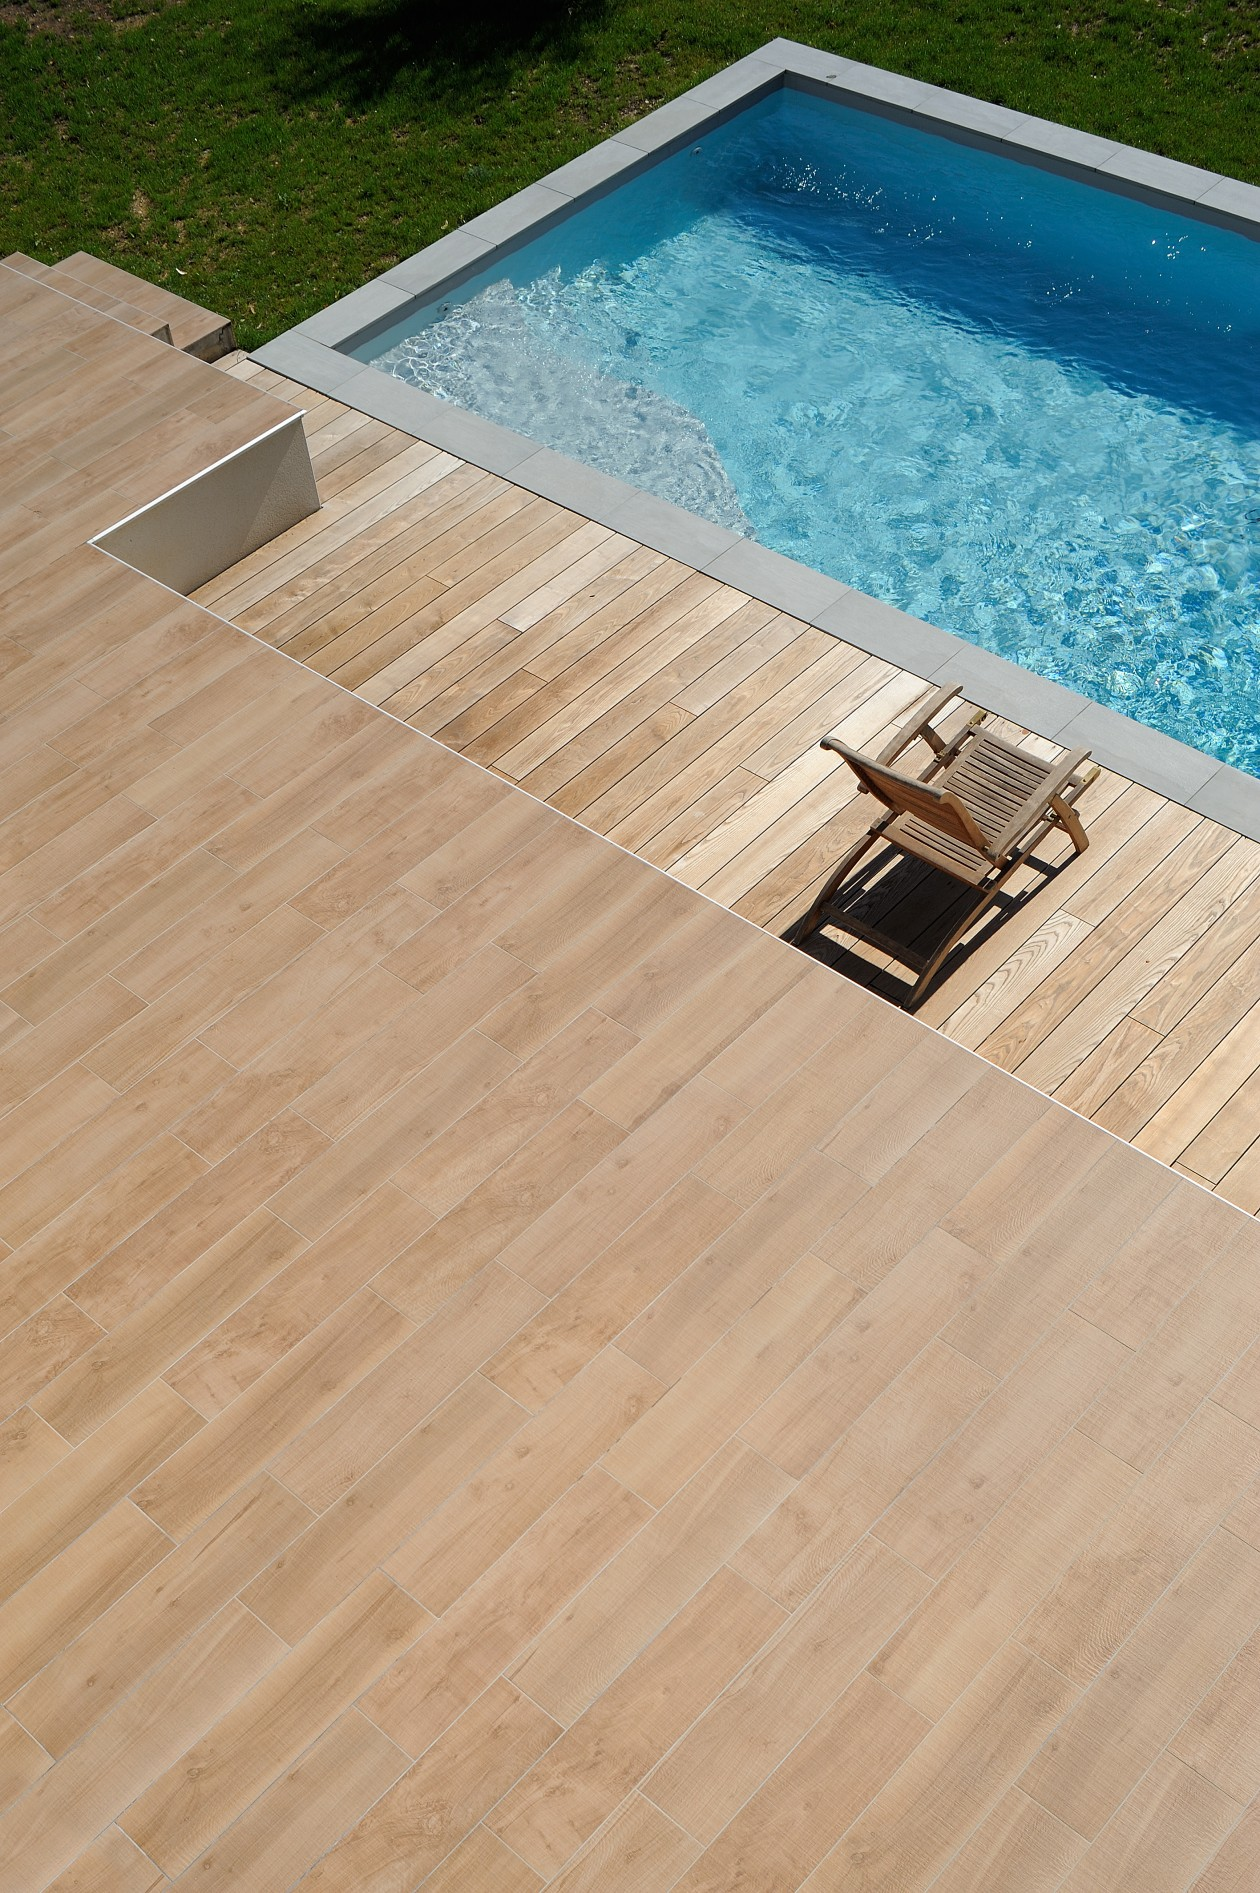 Piscine escalier d 39 angle neyron piscines concept for Piscines concept